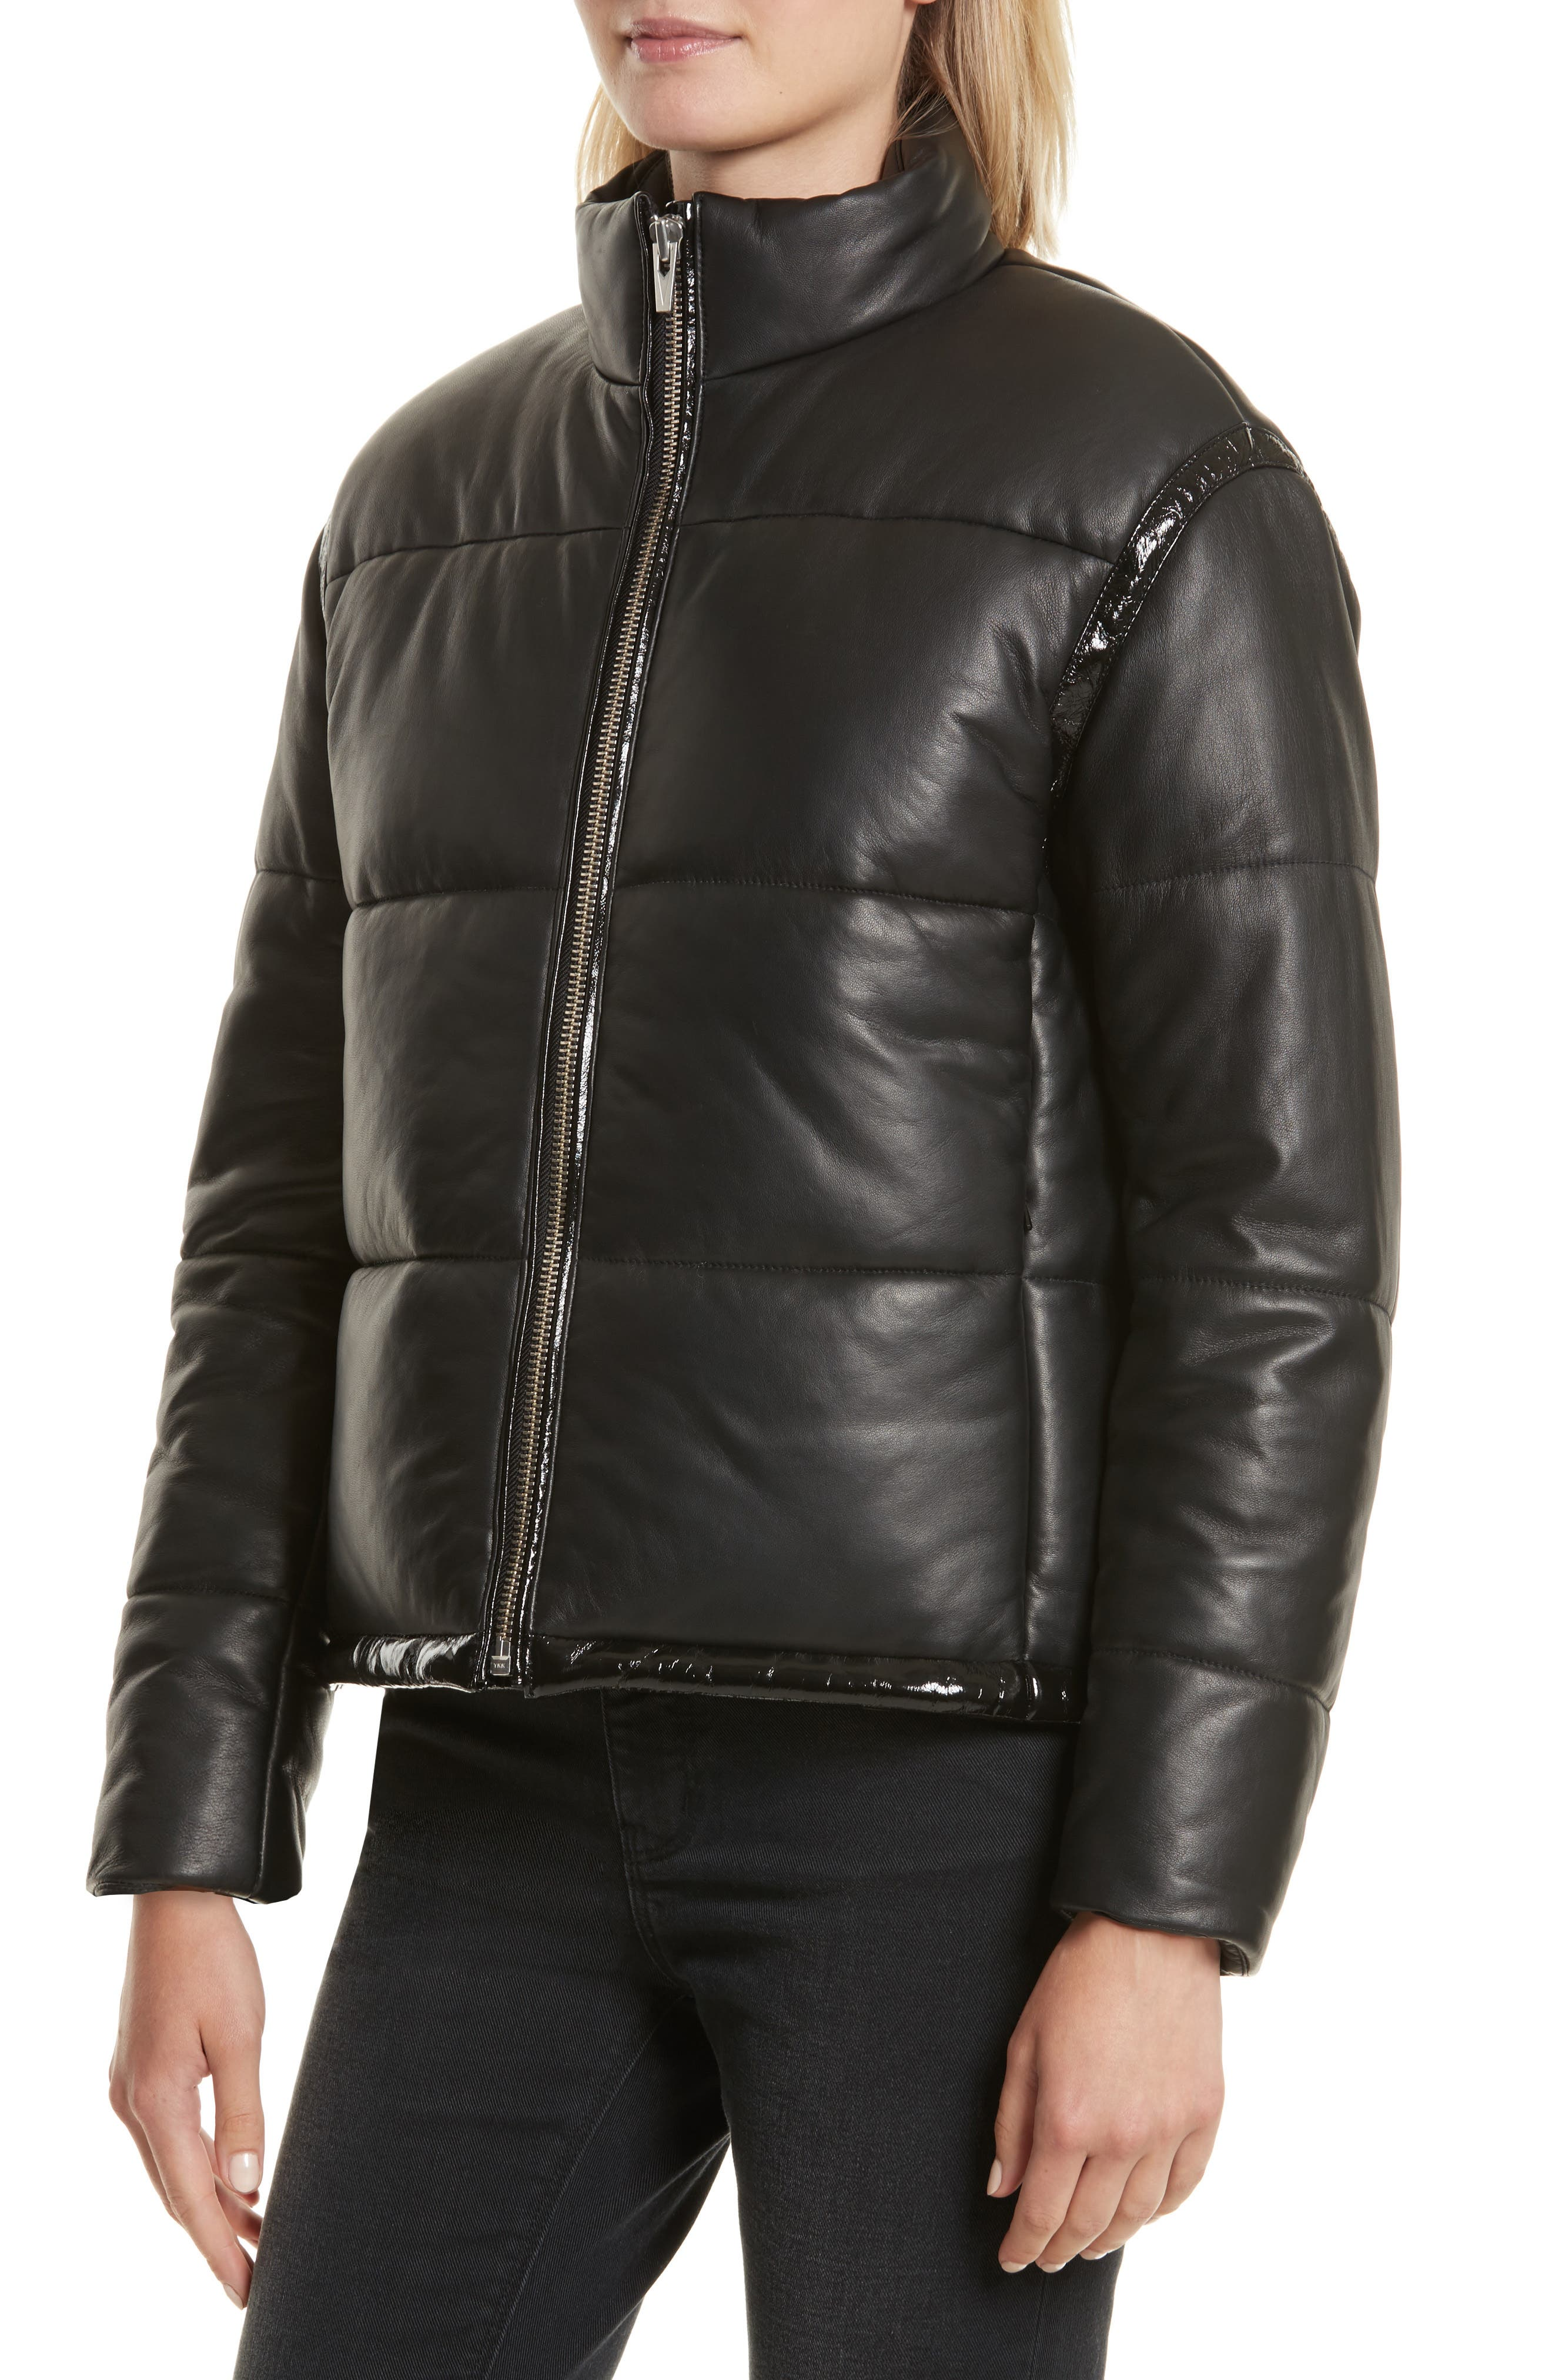 Power Puff Leather Jacket,                             Alternate thumbnail 4, color,                             001